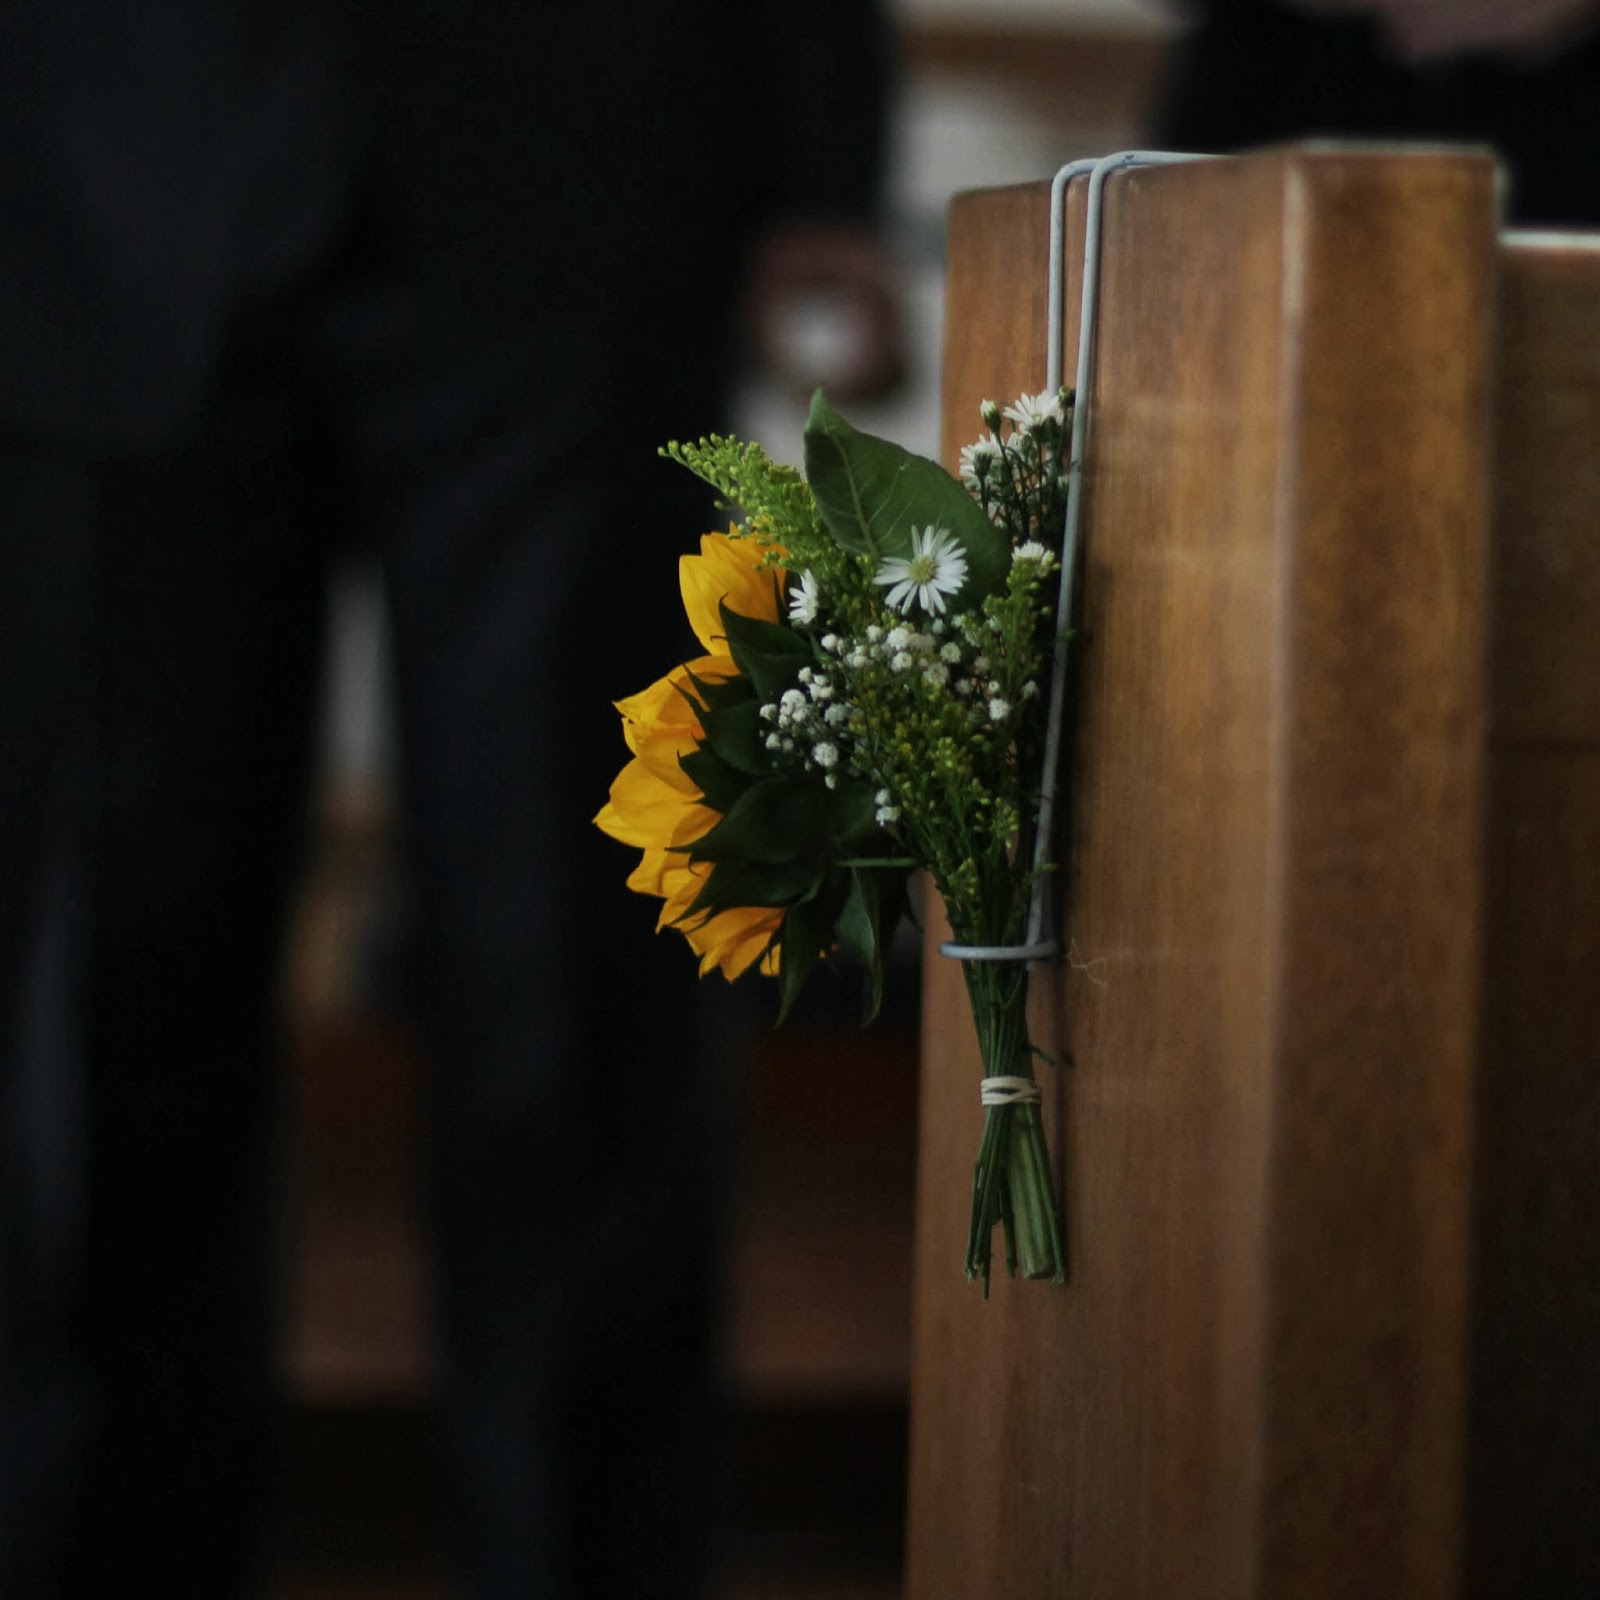 attaching flowers to pews/seats